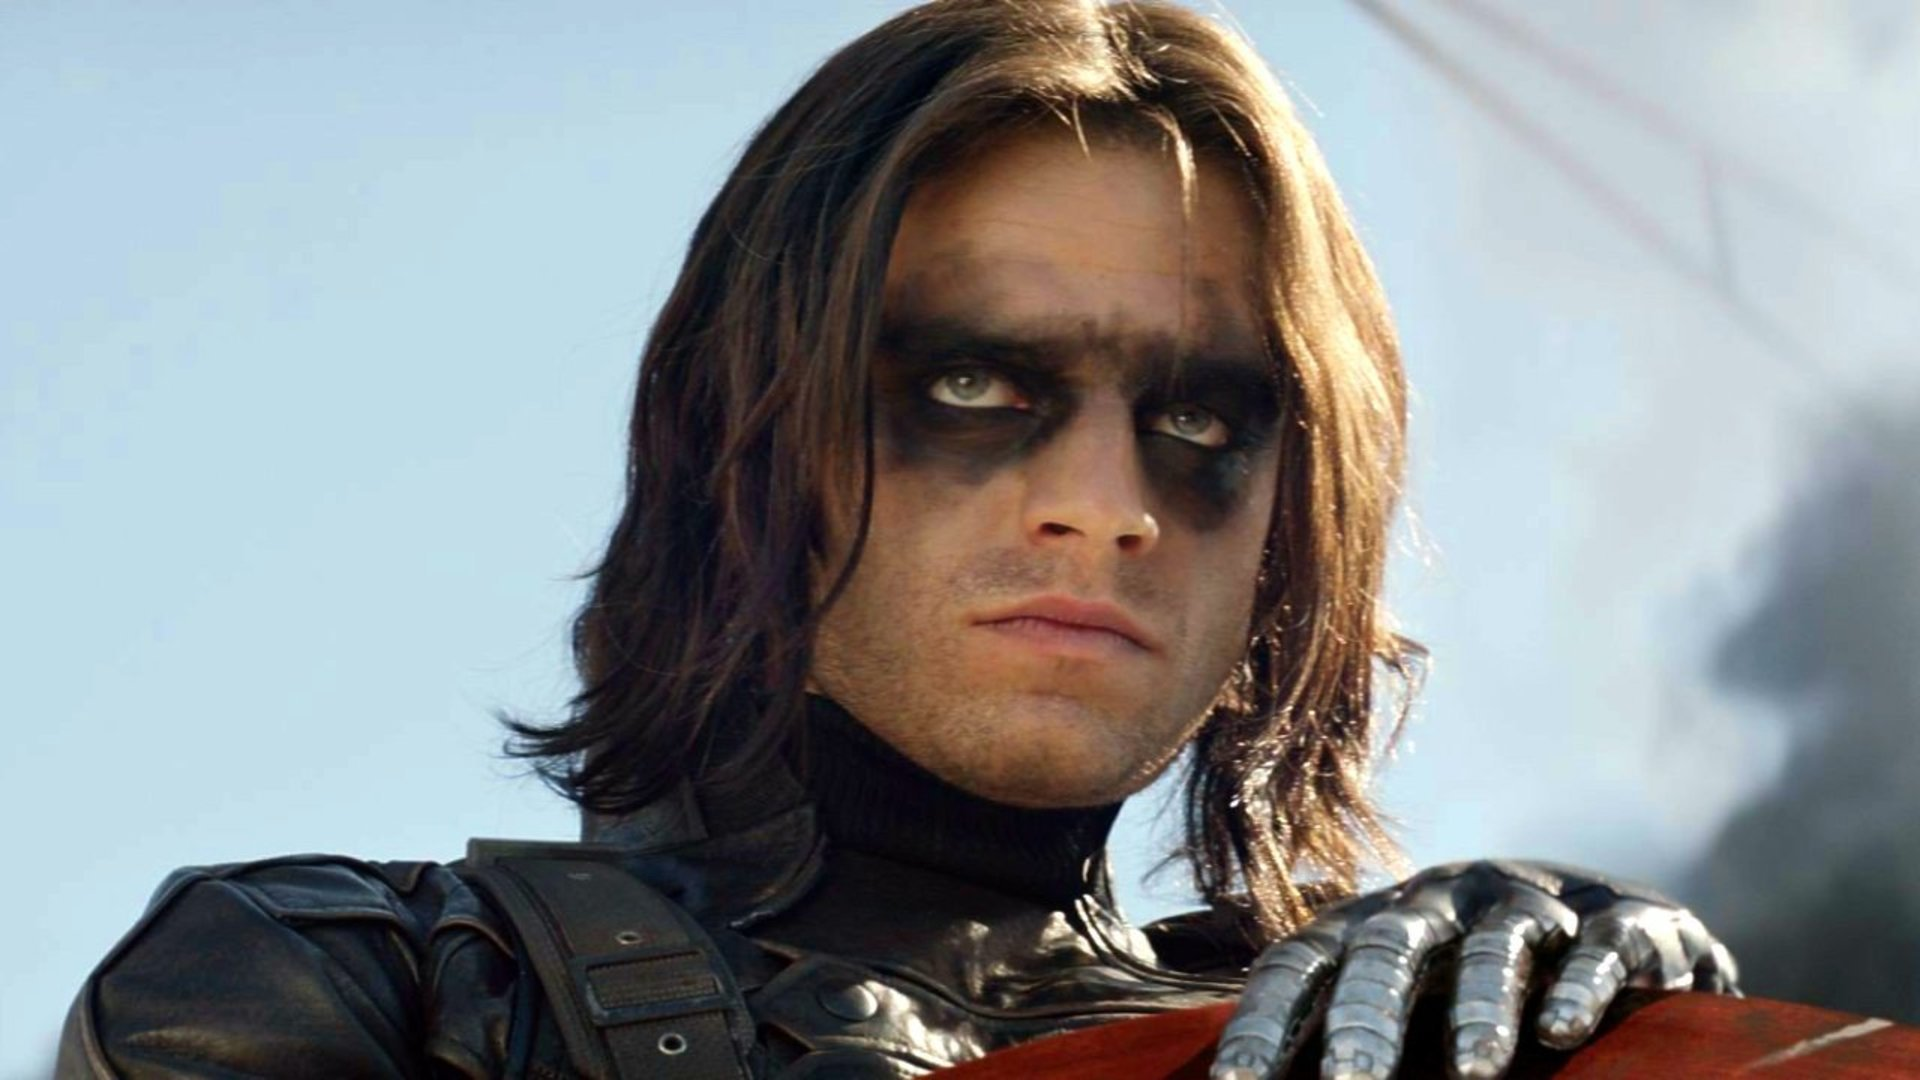 Winter Soldier Pictures